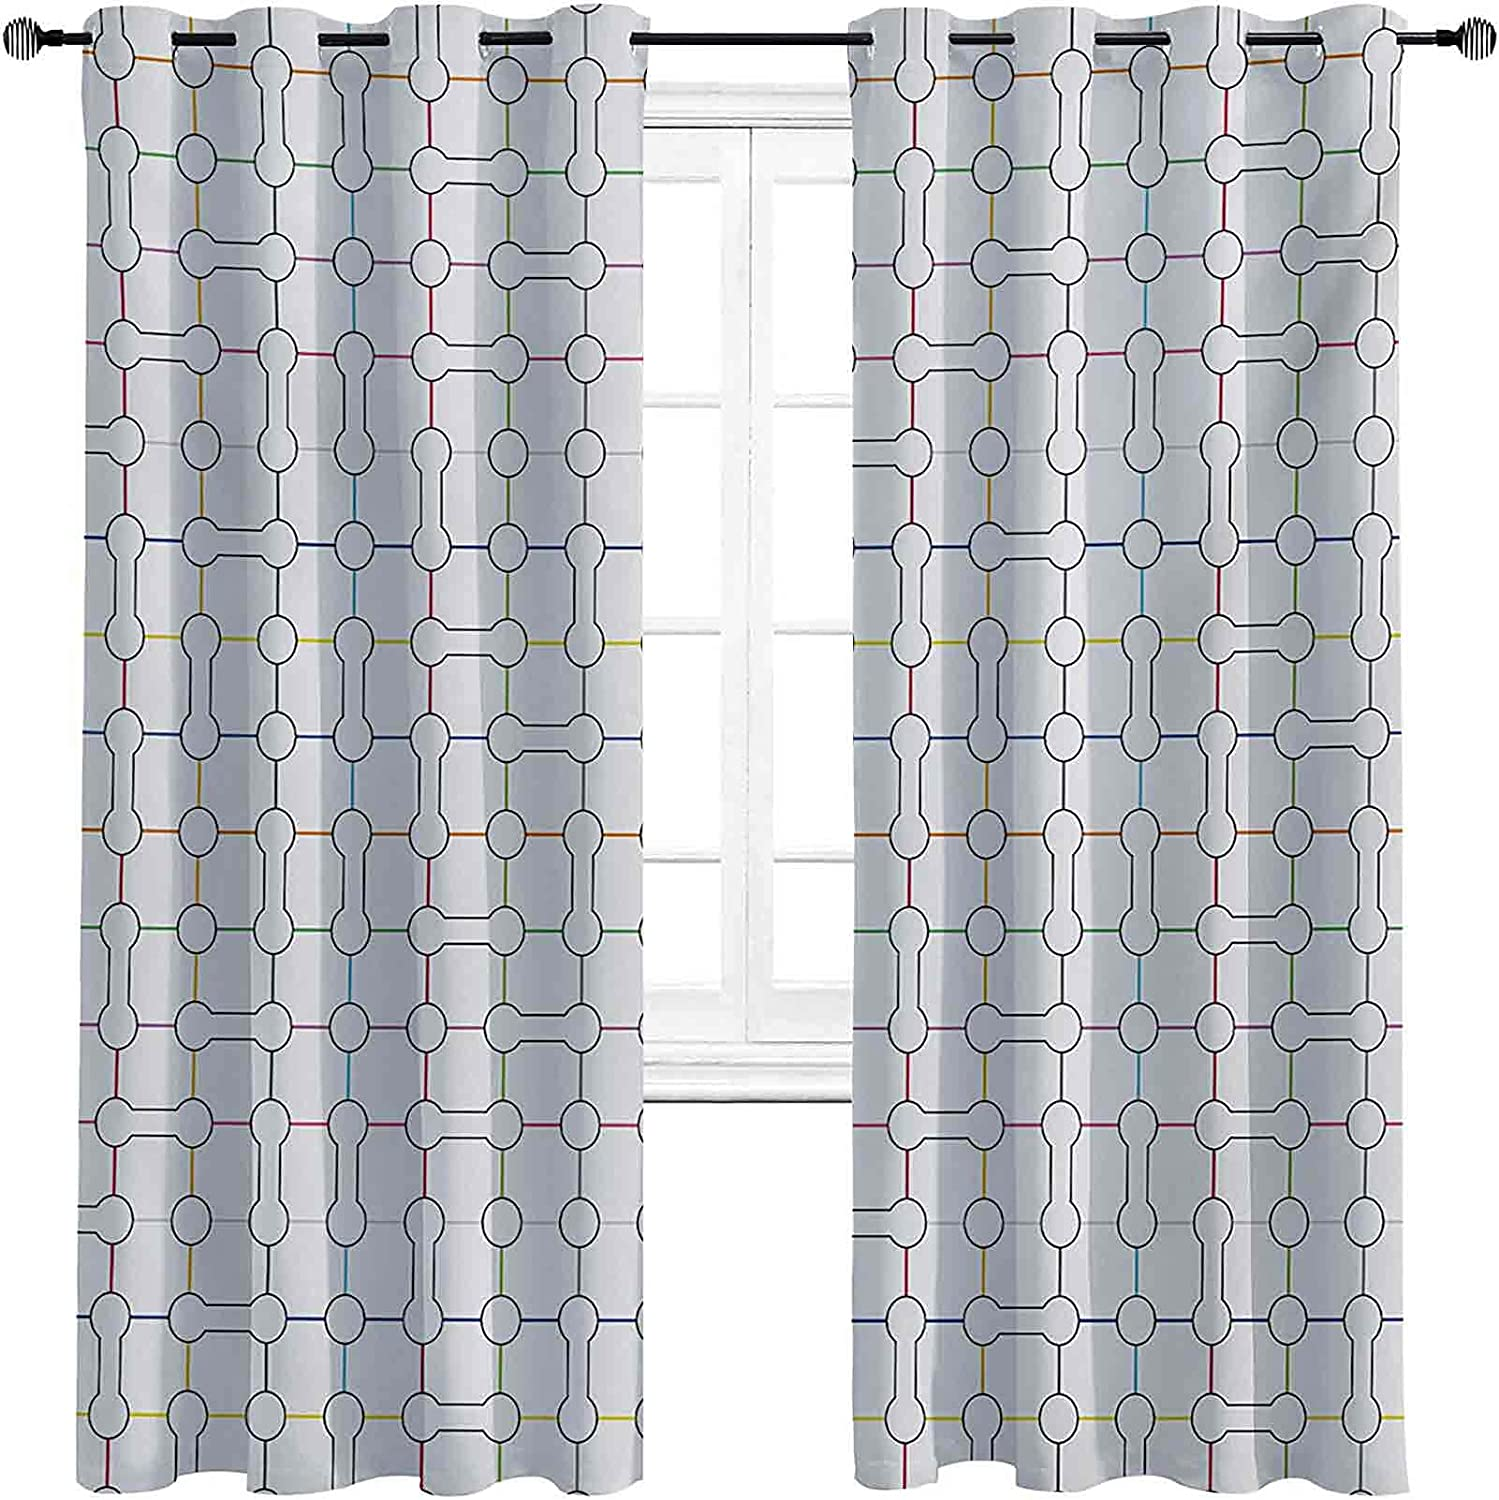 Overseas parallel import regular item with Grommets blackoutModern Art Computer Curtain Inspired Bone Max 79% OFF